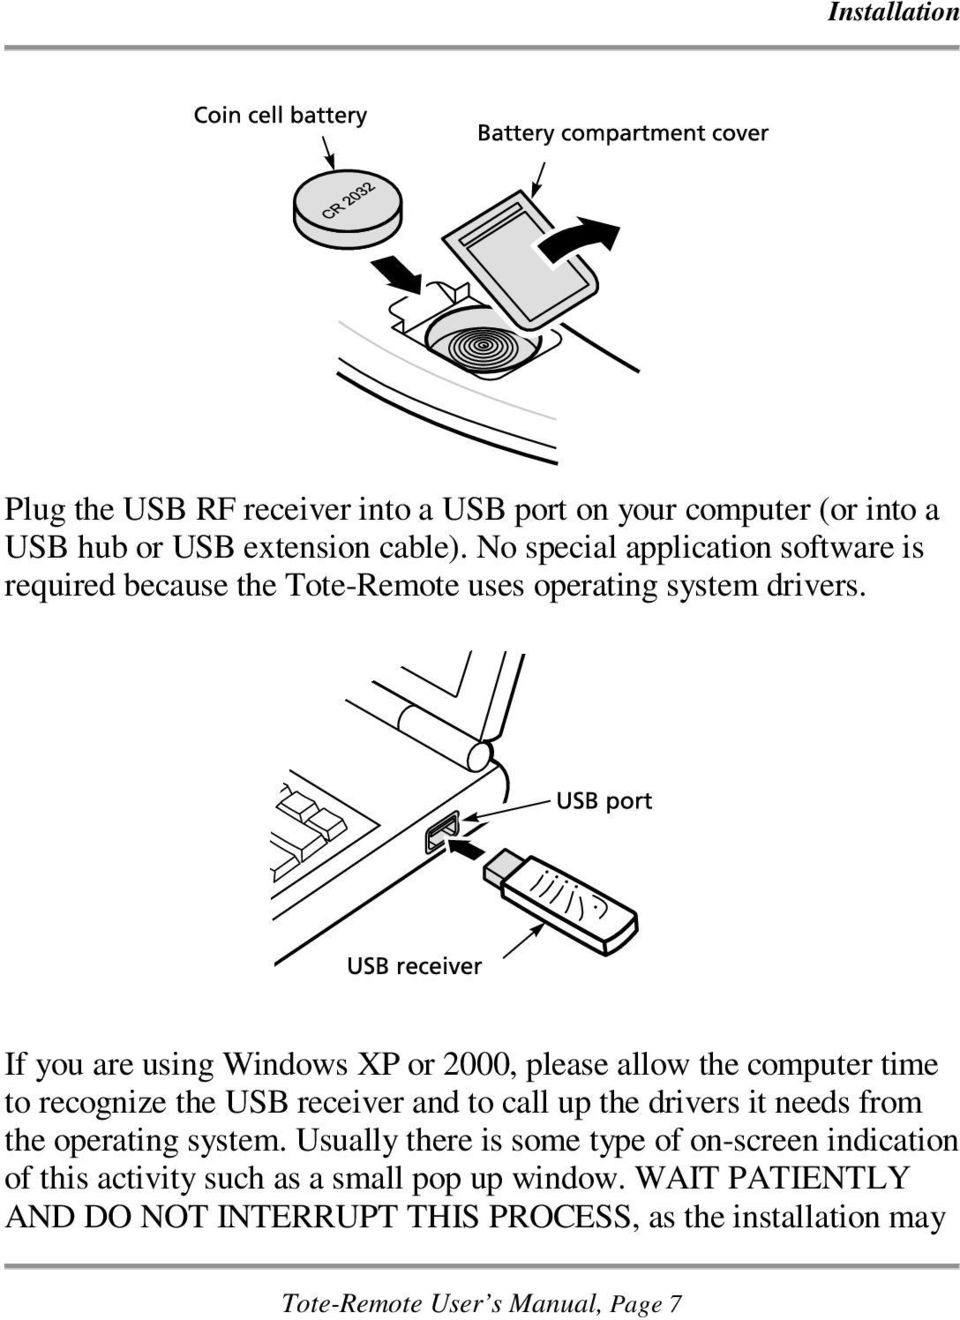 If you are using Windows XP or 2000, please allow the computer time to recognize the USB receiver and to call up the drivers it needs from the